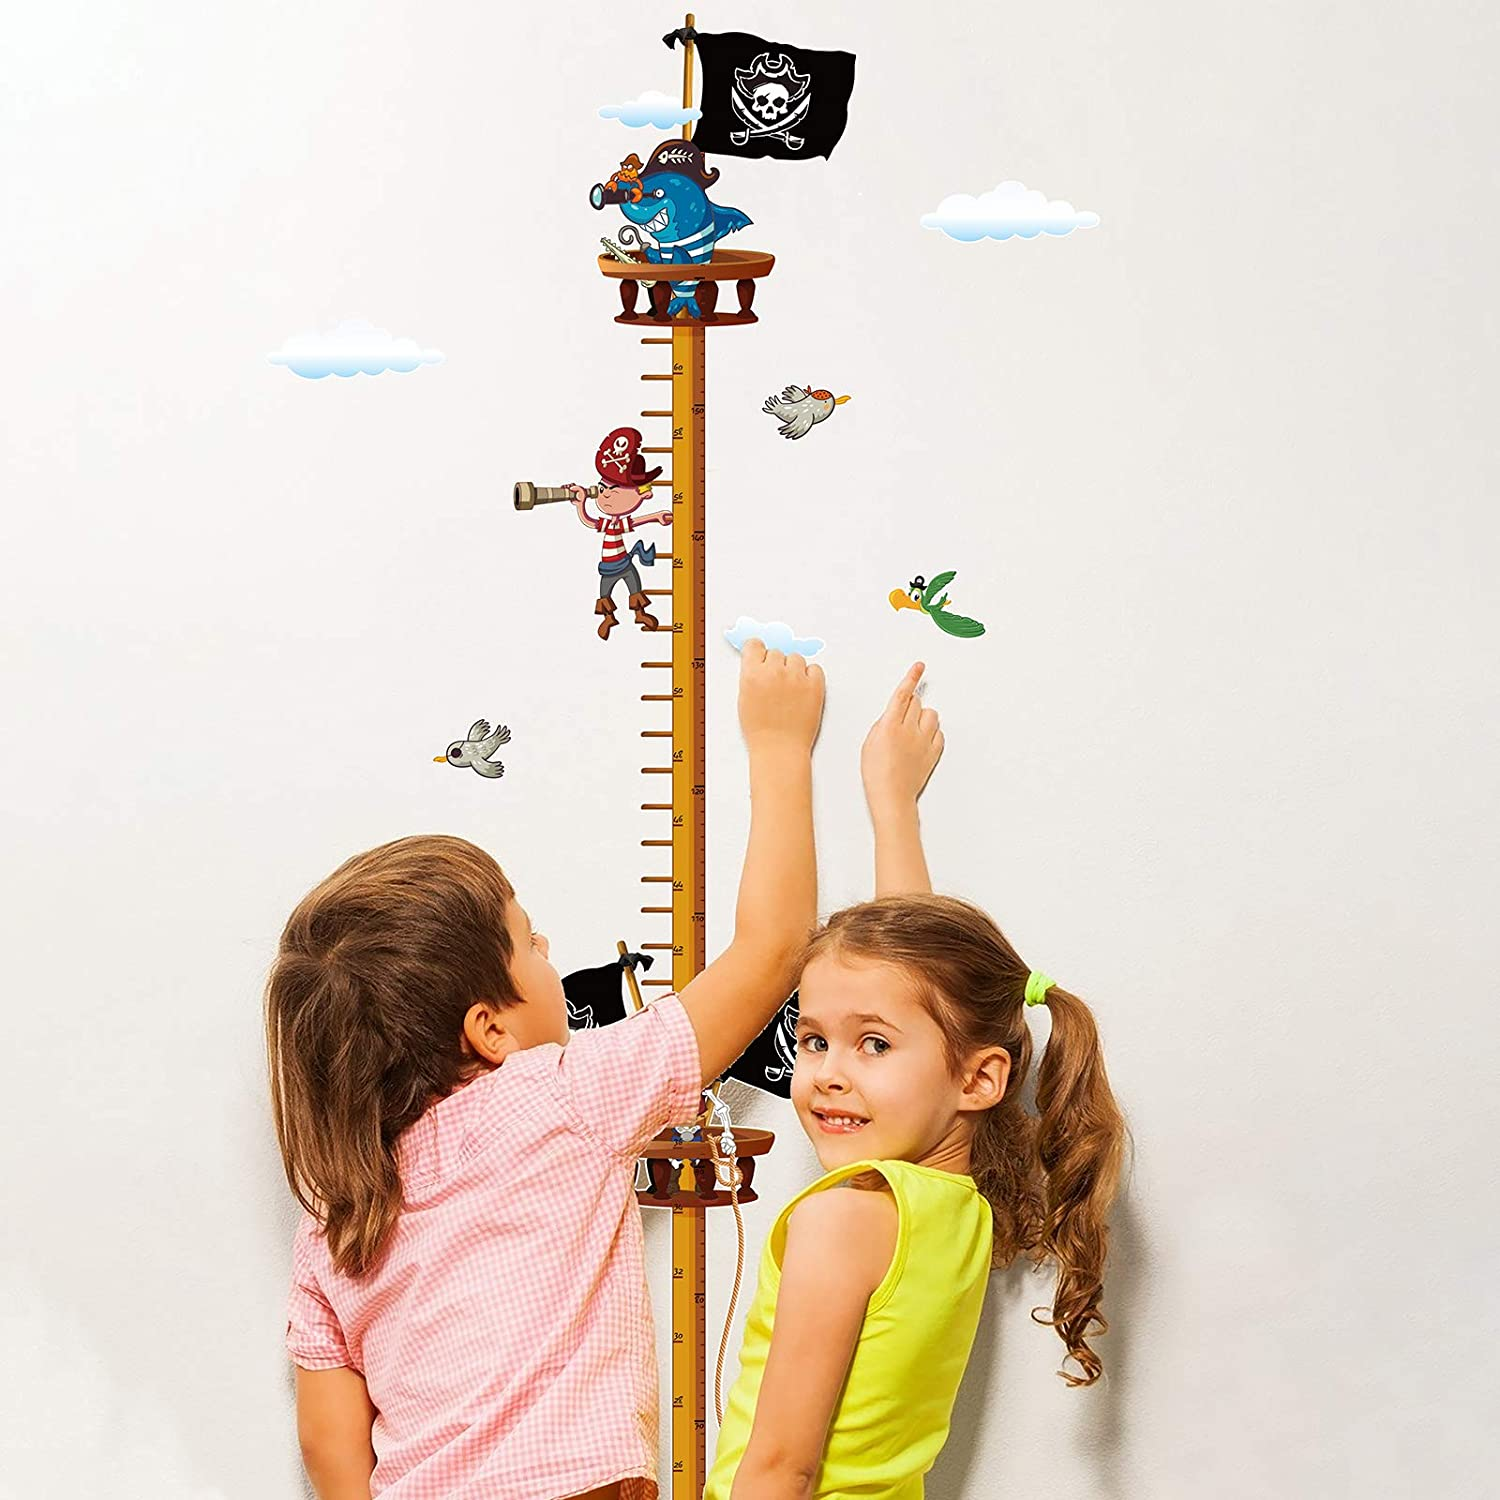 AirSMall Pirate Ruler Wall Decal Nursery Wall Stickers Body Height Measure Children Wall Stickers Childrens Ruler as First Apartment Gift Wall Sticker Pirate Wall Decoration